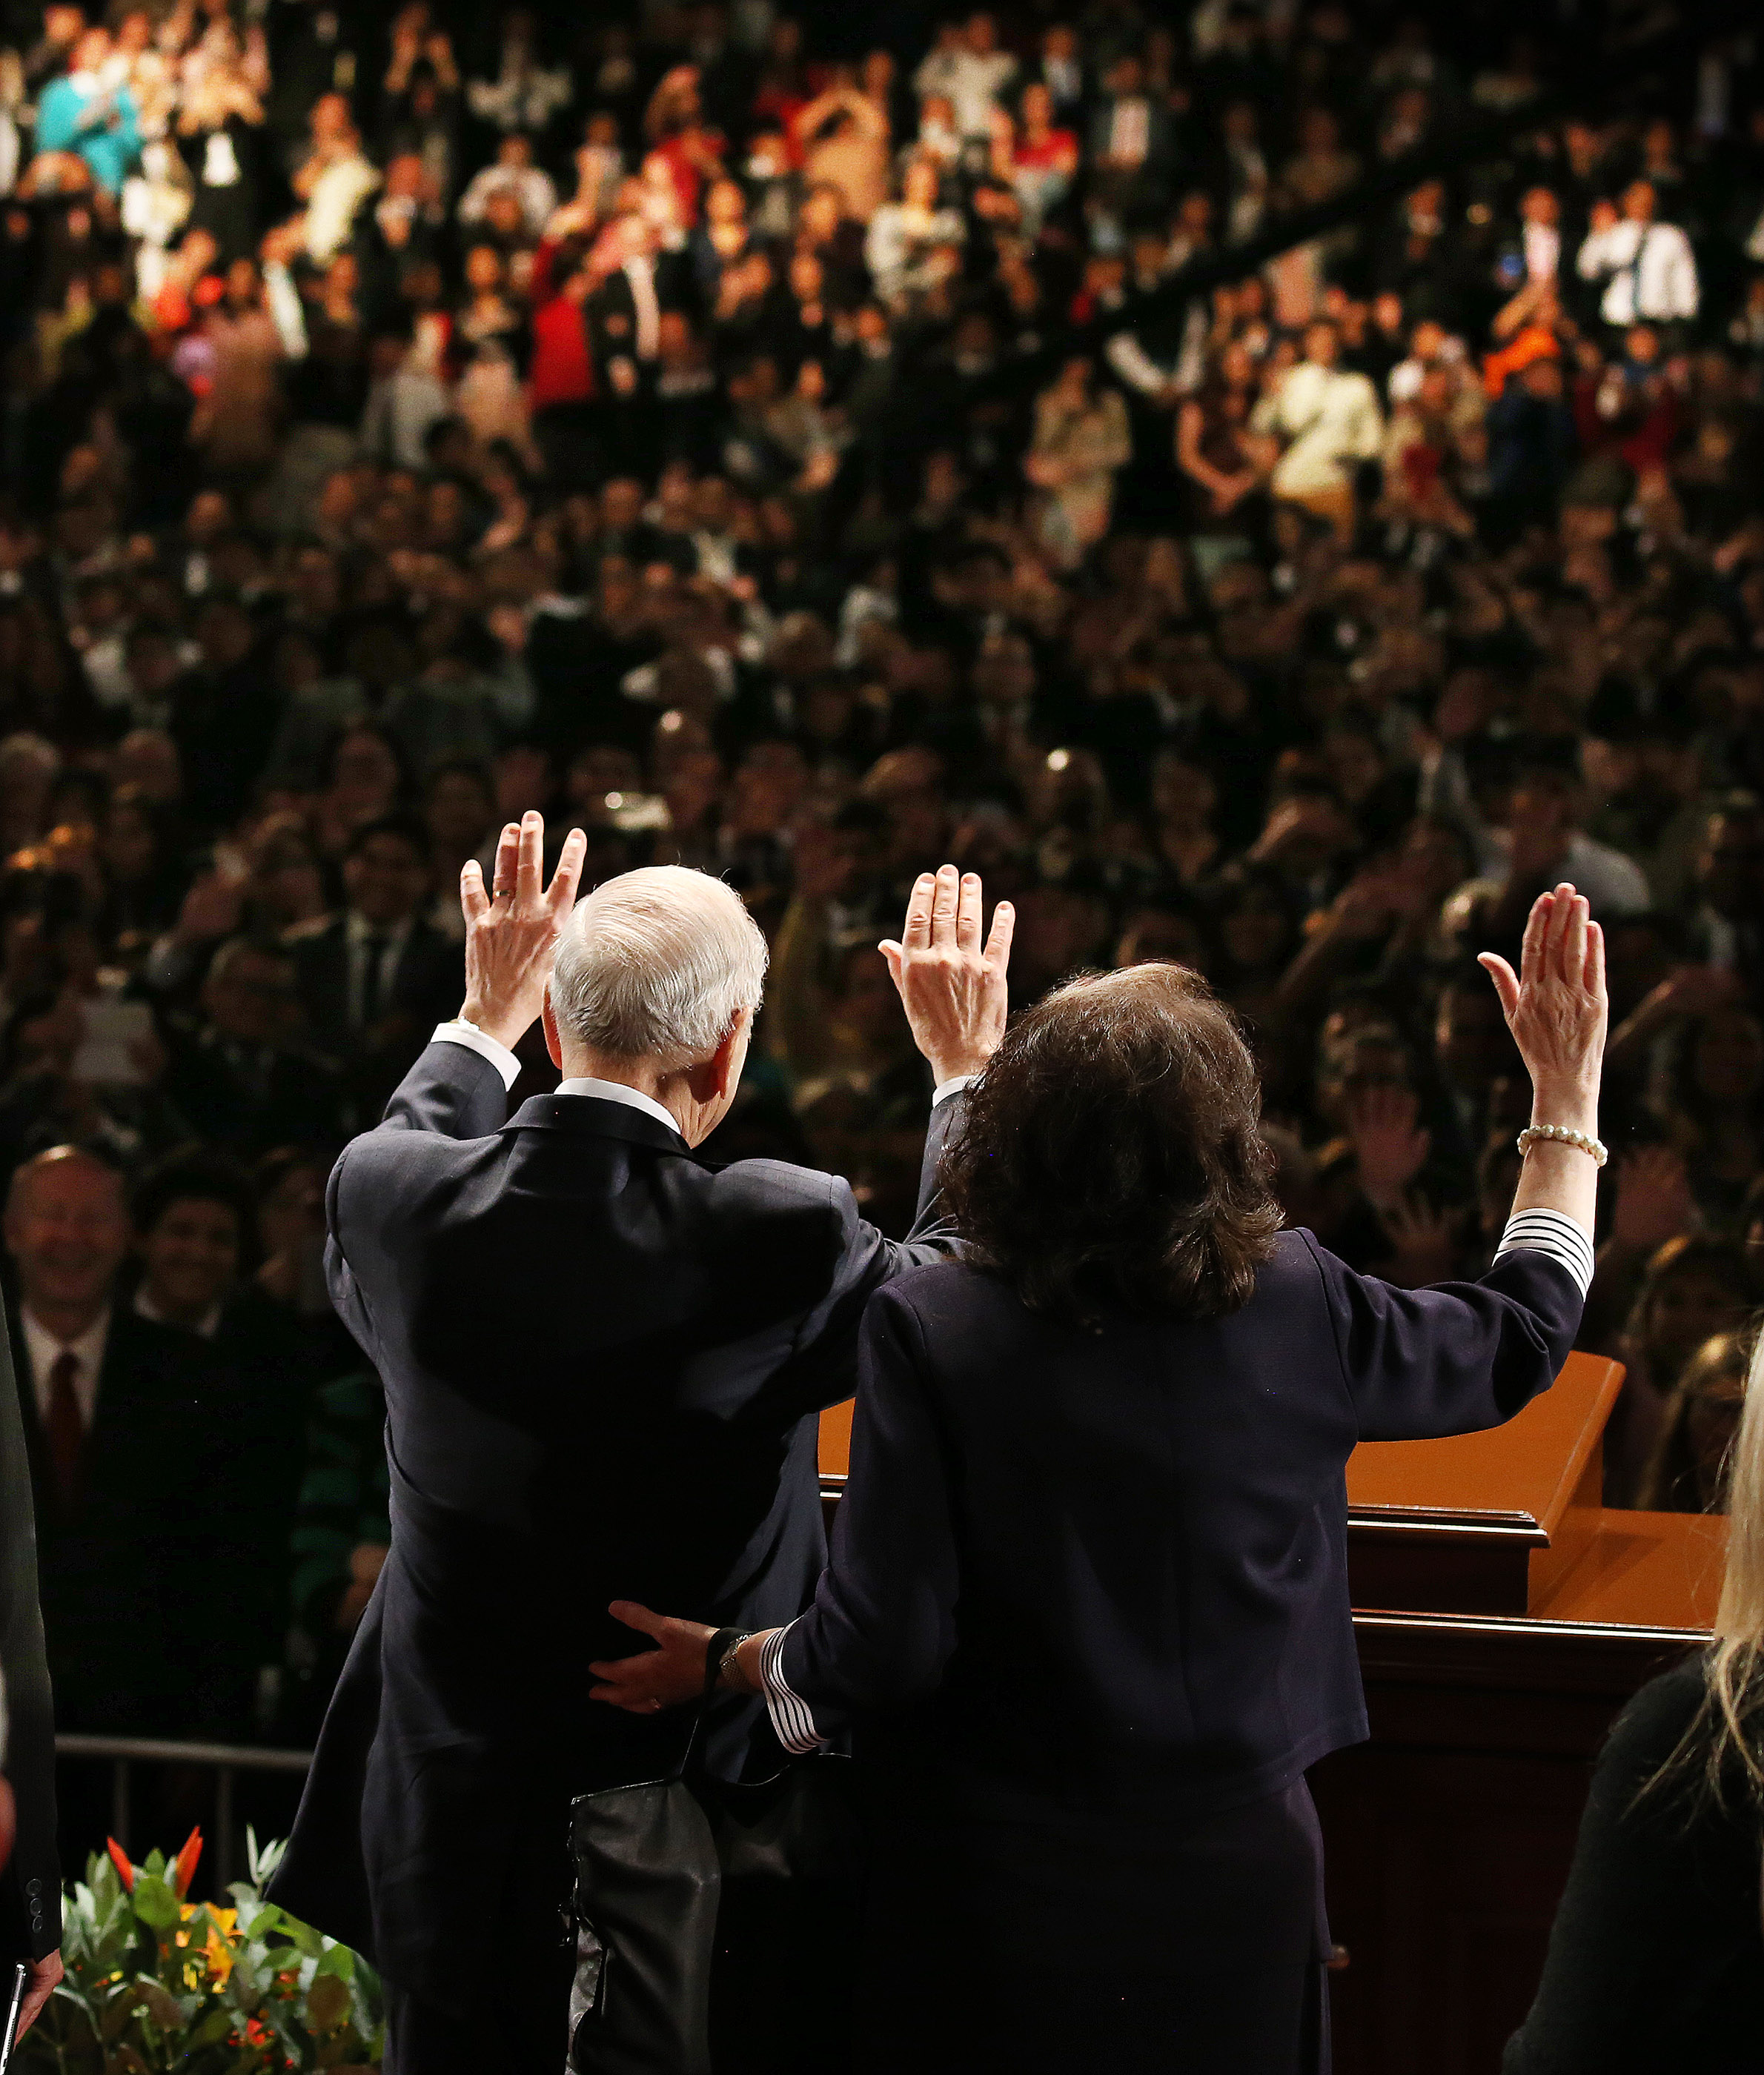 President Russell M. Nelson of The Church of Jesus Christ of Latter-day Saints and his wife, Sister Wendy Nelson, wave to attendees after a devotional in Lima, Peru, on Oct. 20, 2018.